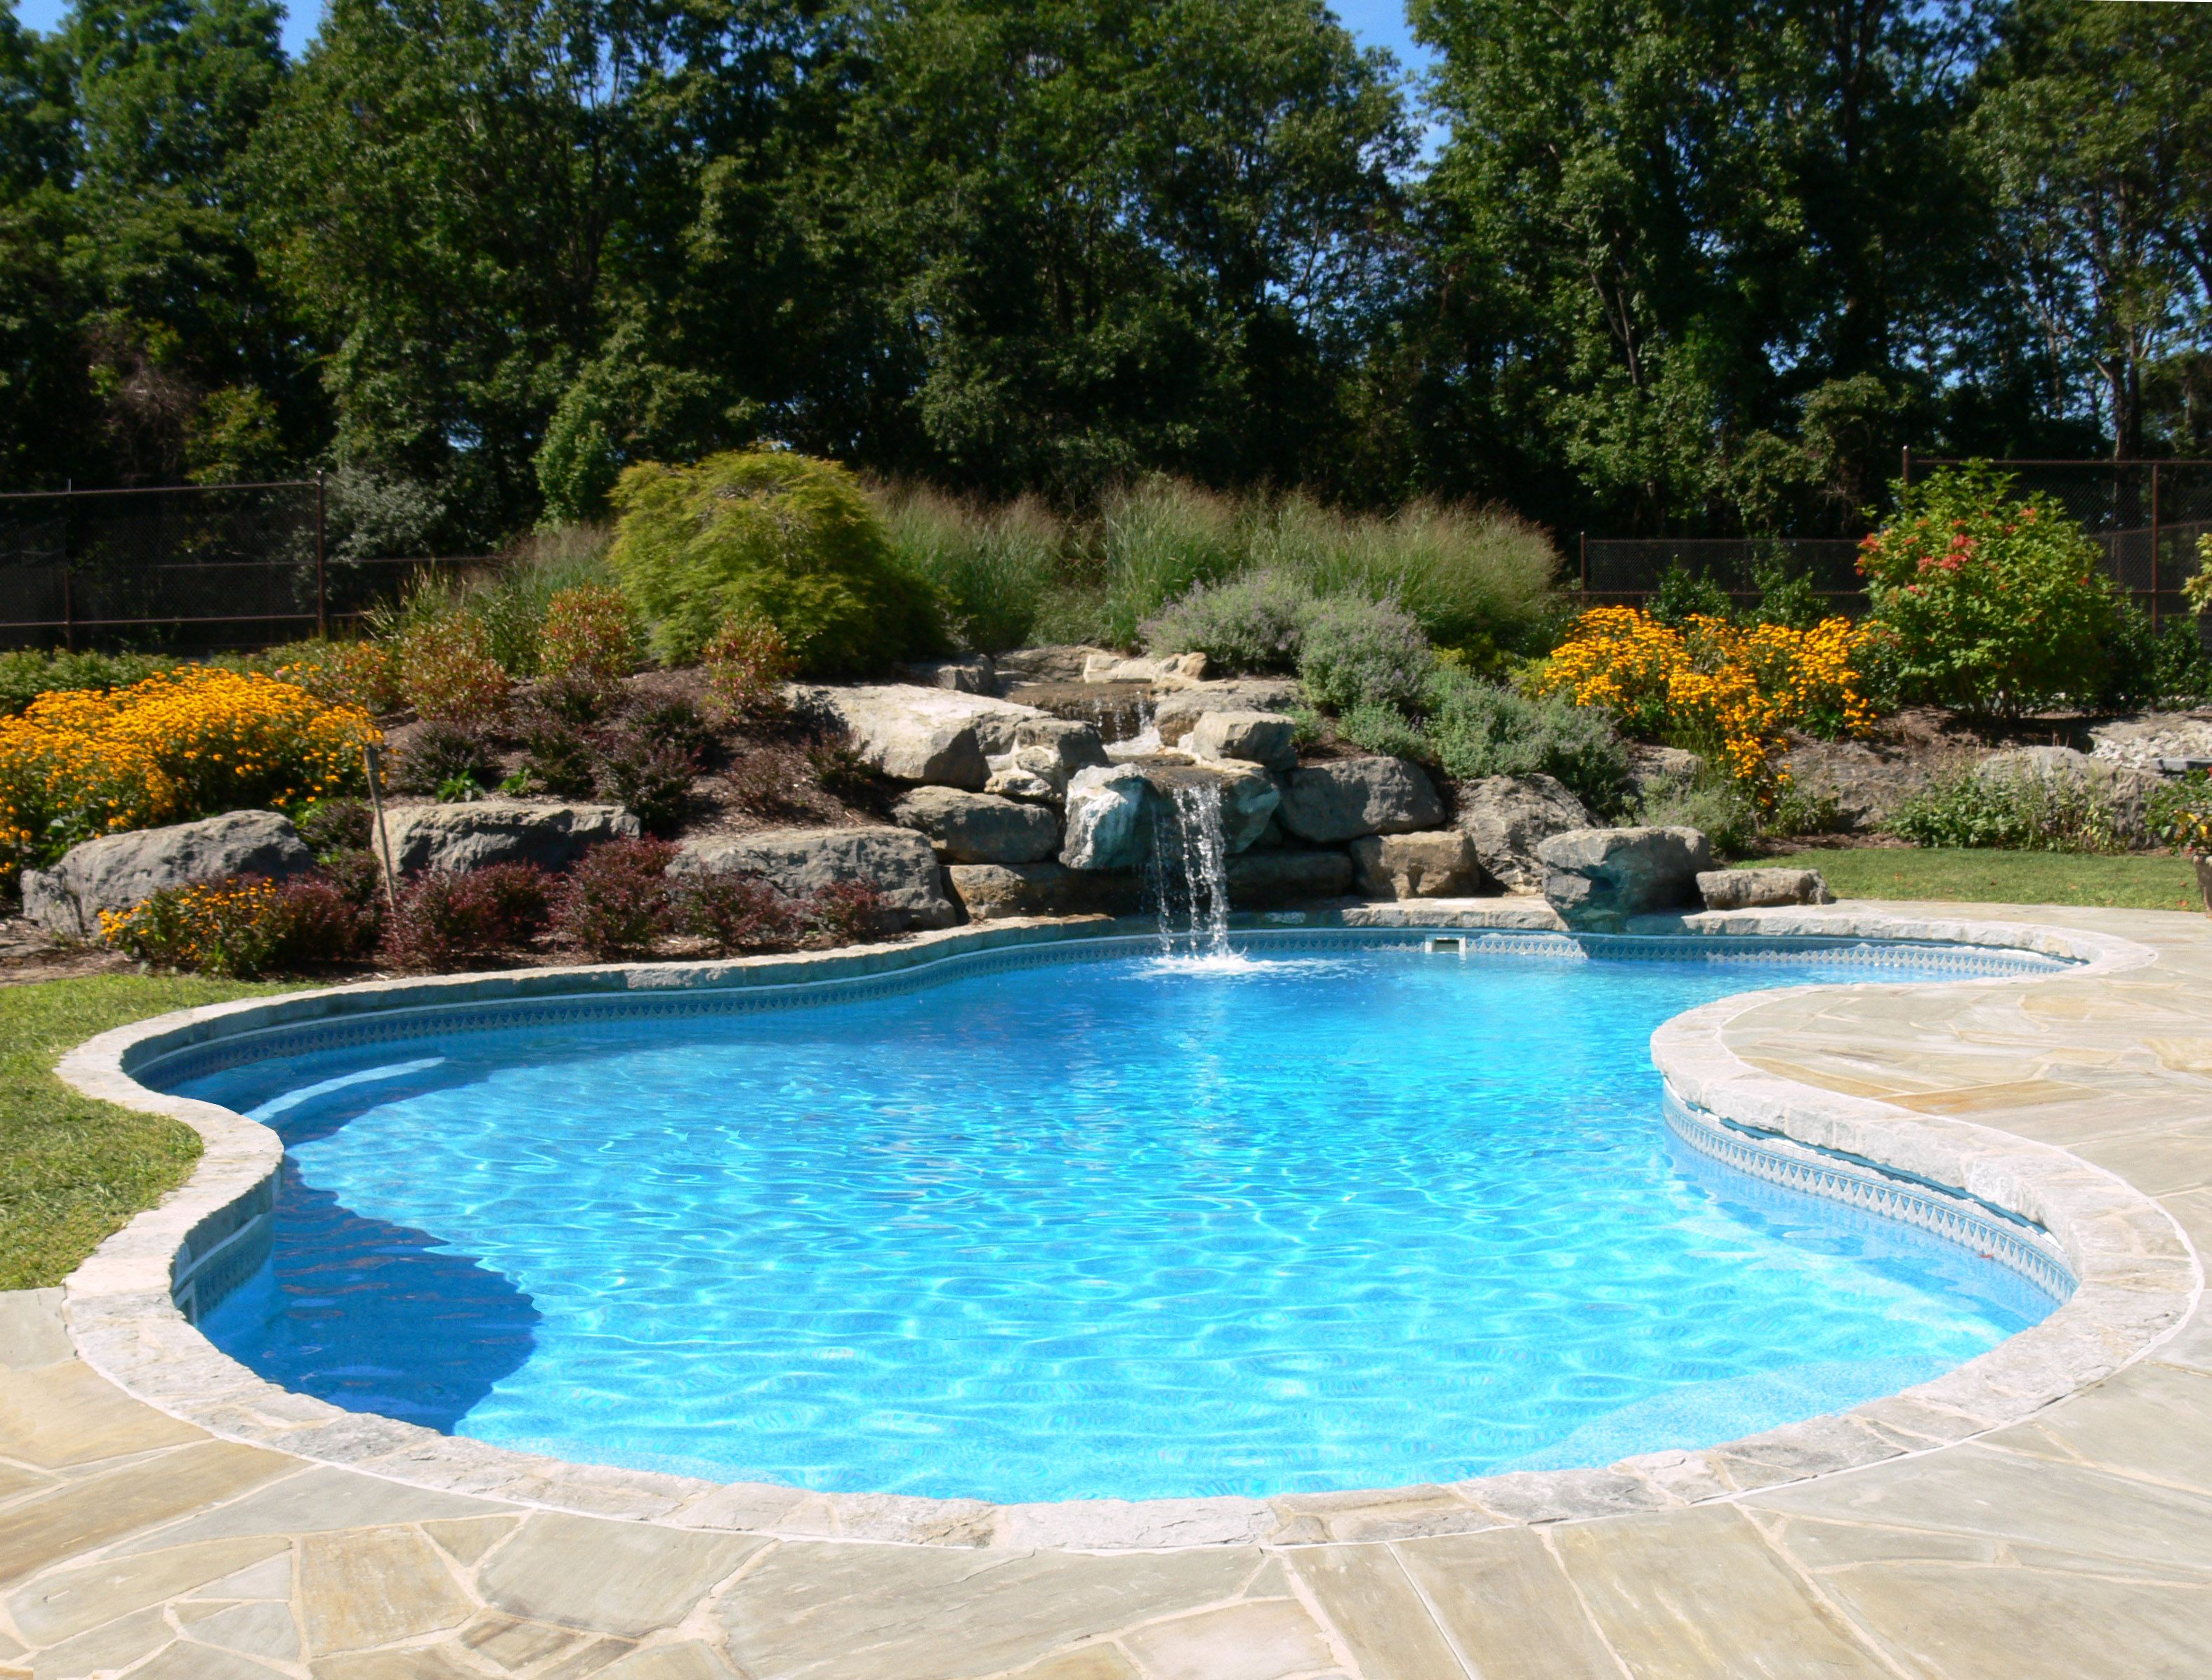 Lagoon pool kits from pool warehouse pool kits for Pictures of inground pools